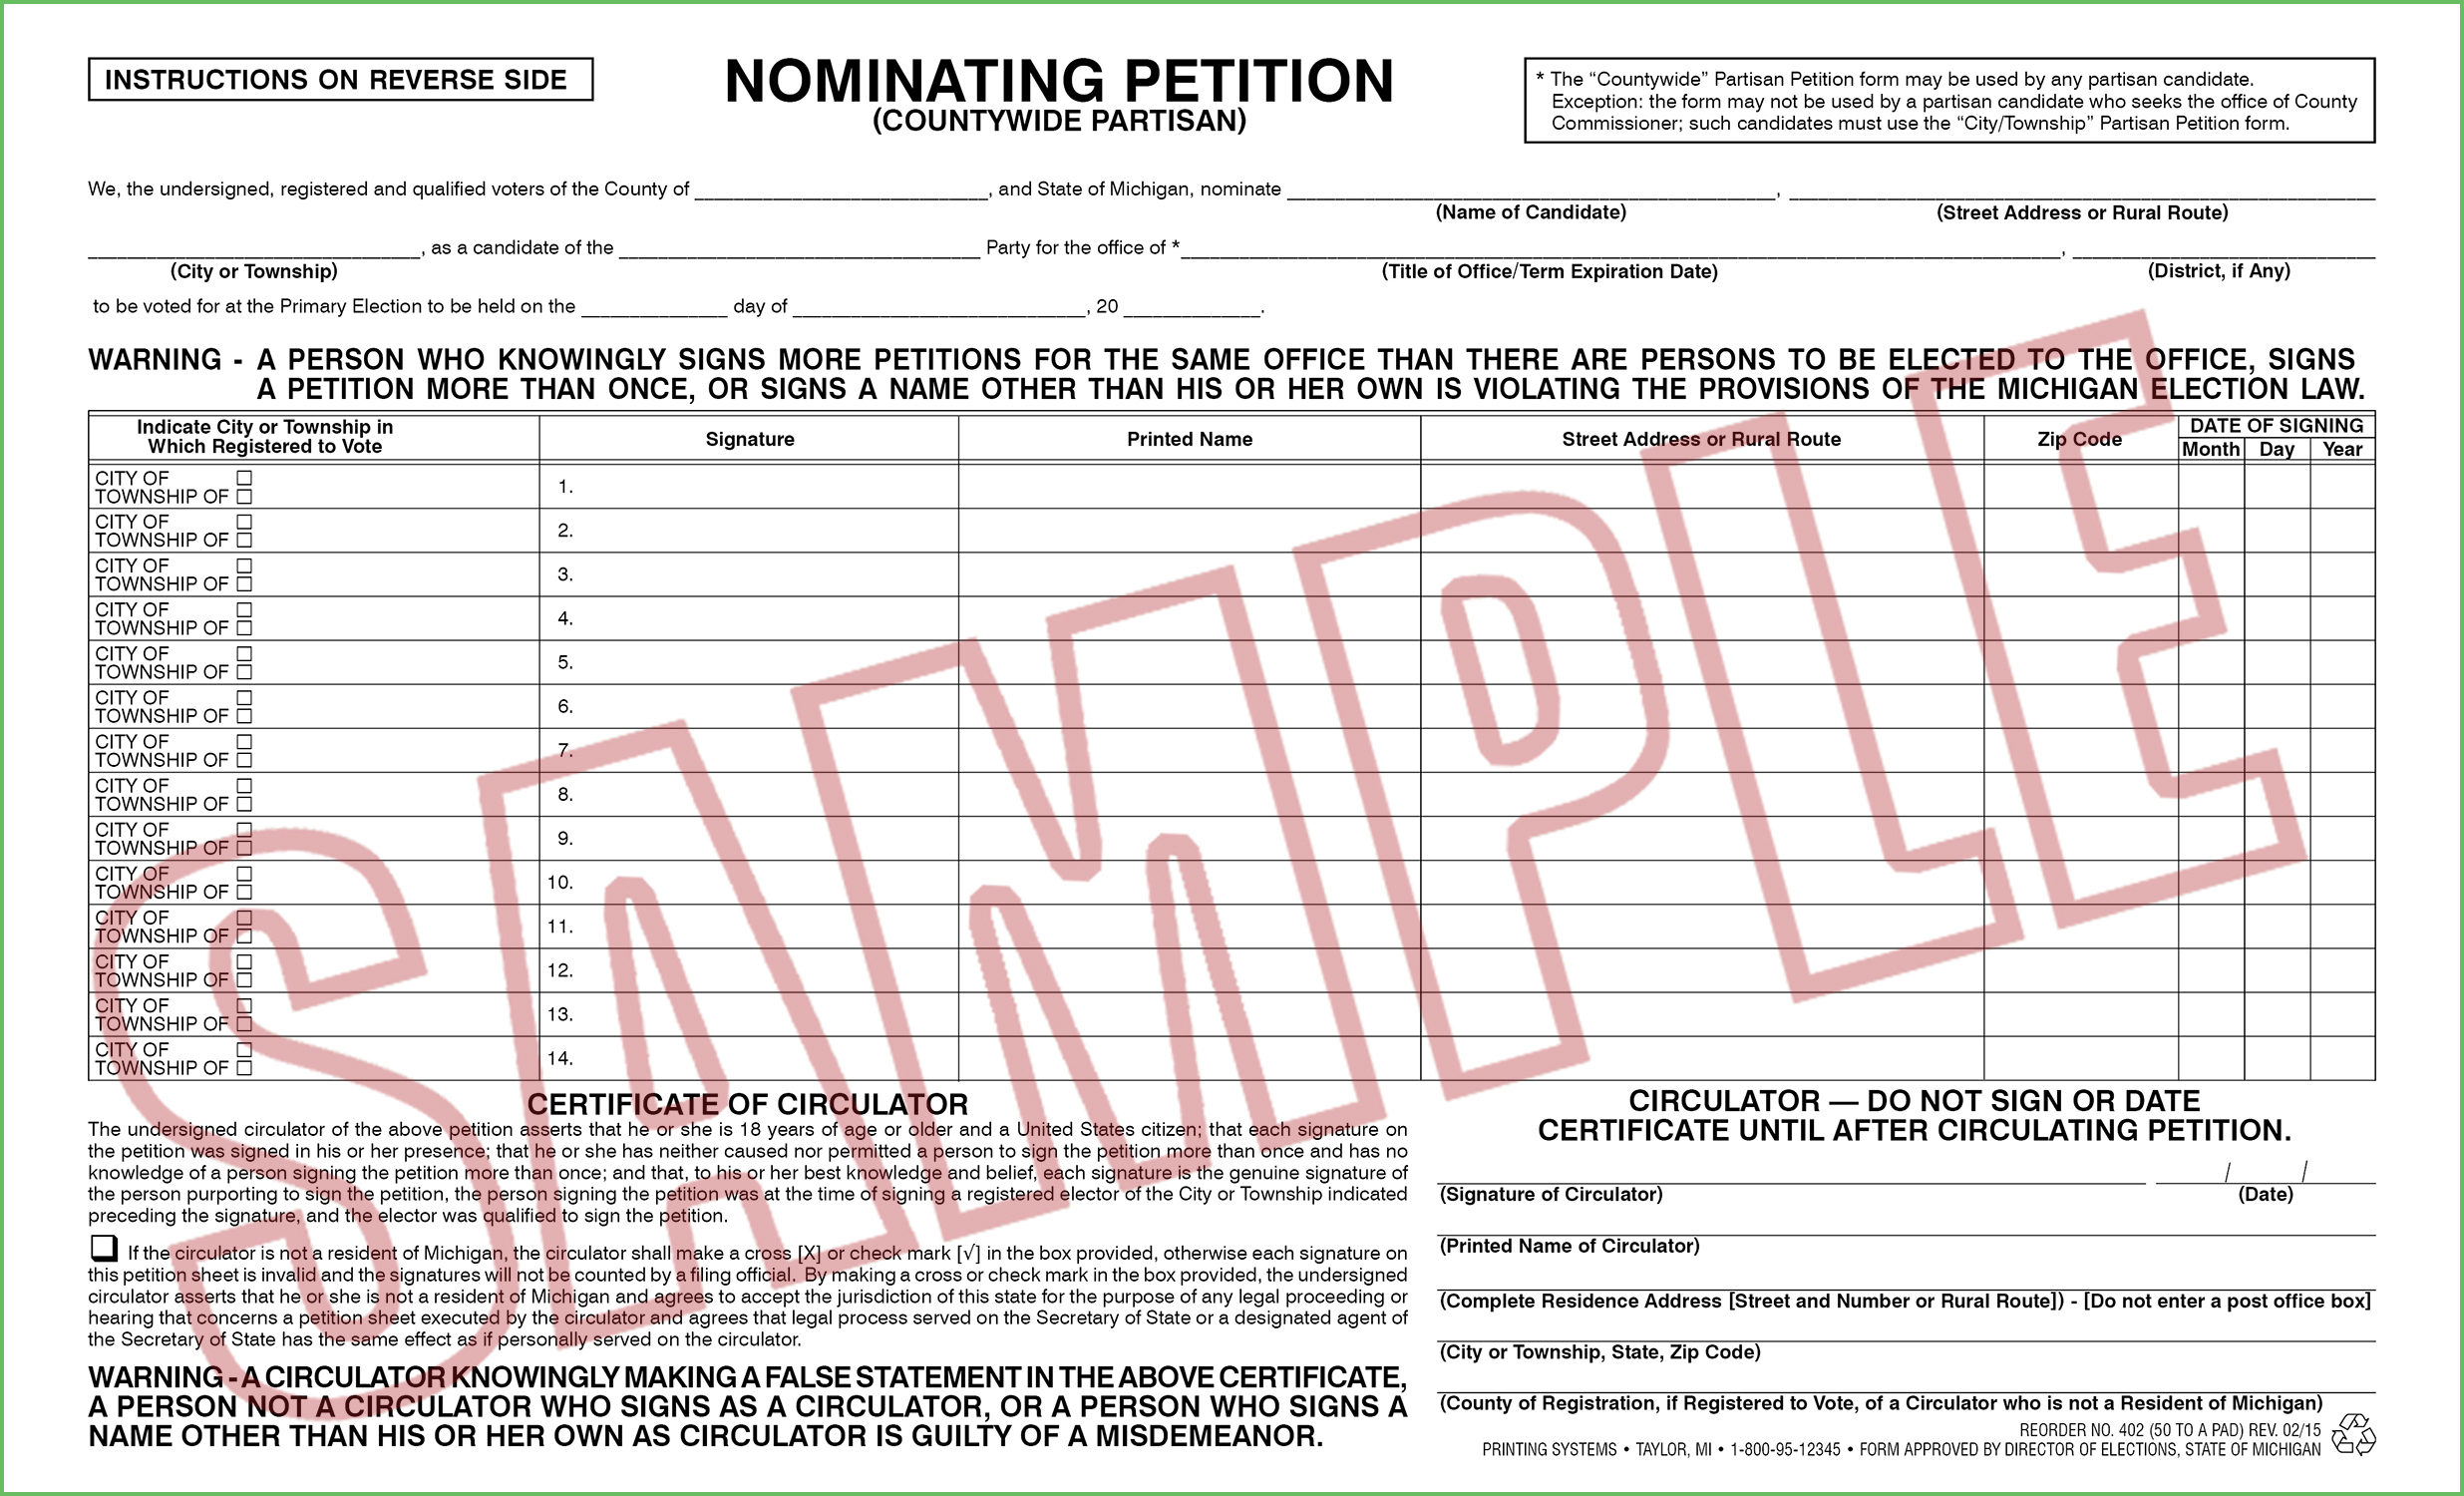 402 Nominating Petition (Countywide) Partisan (50 per pad)